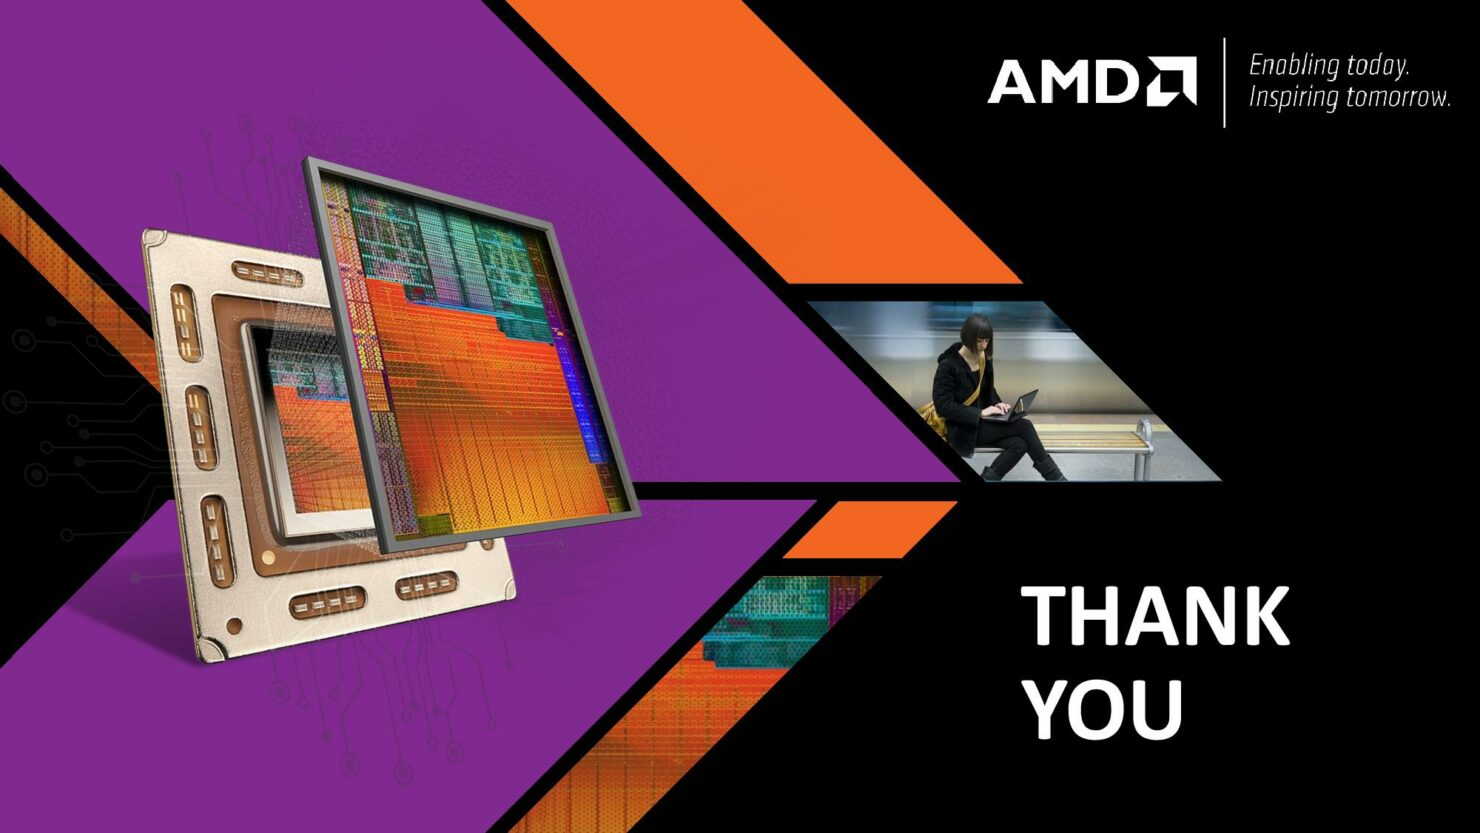 amd2014performancemobileapus-140528183404-phpapp02-page-023